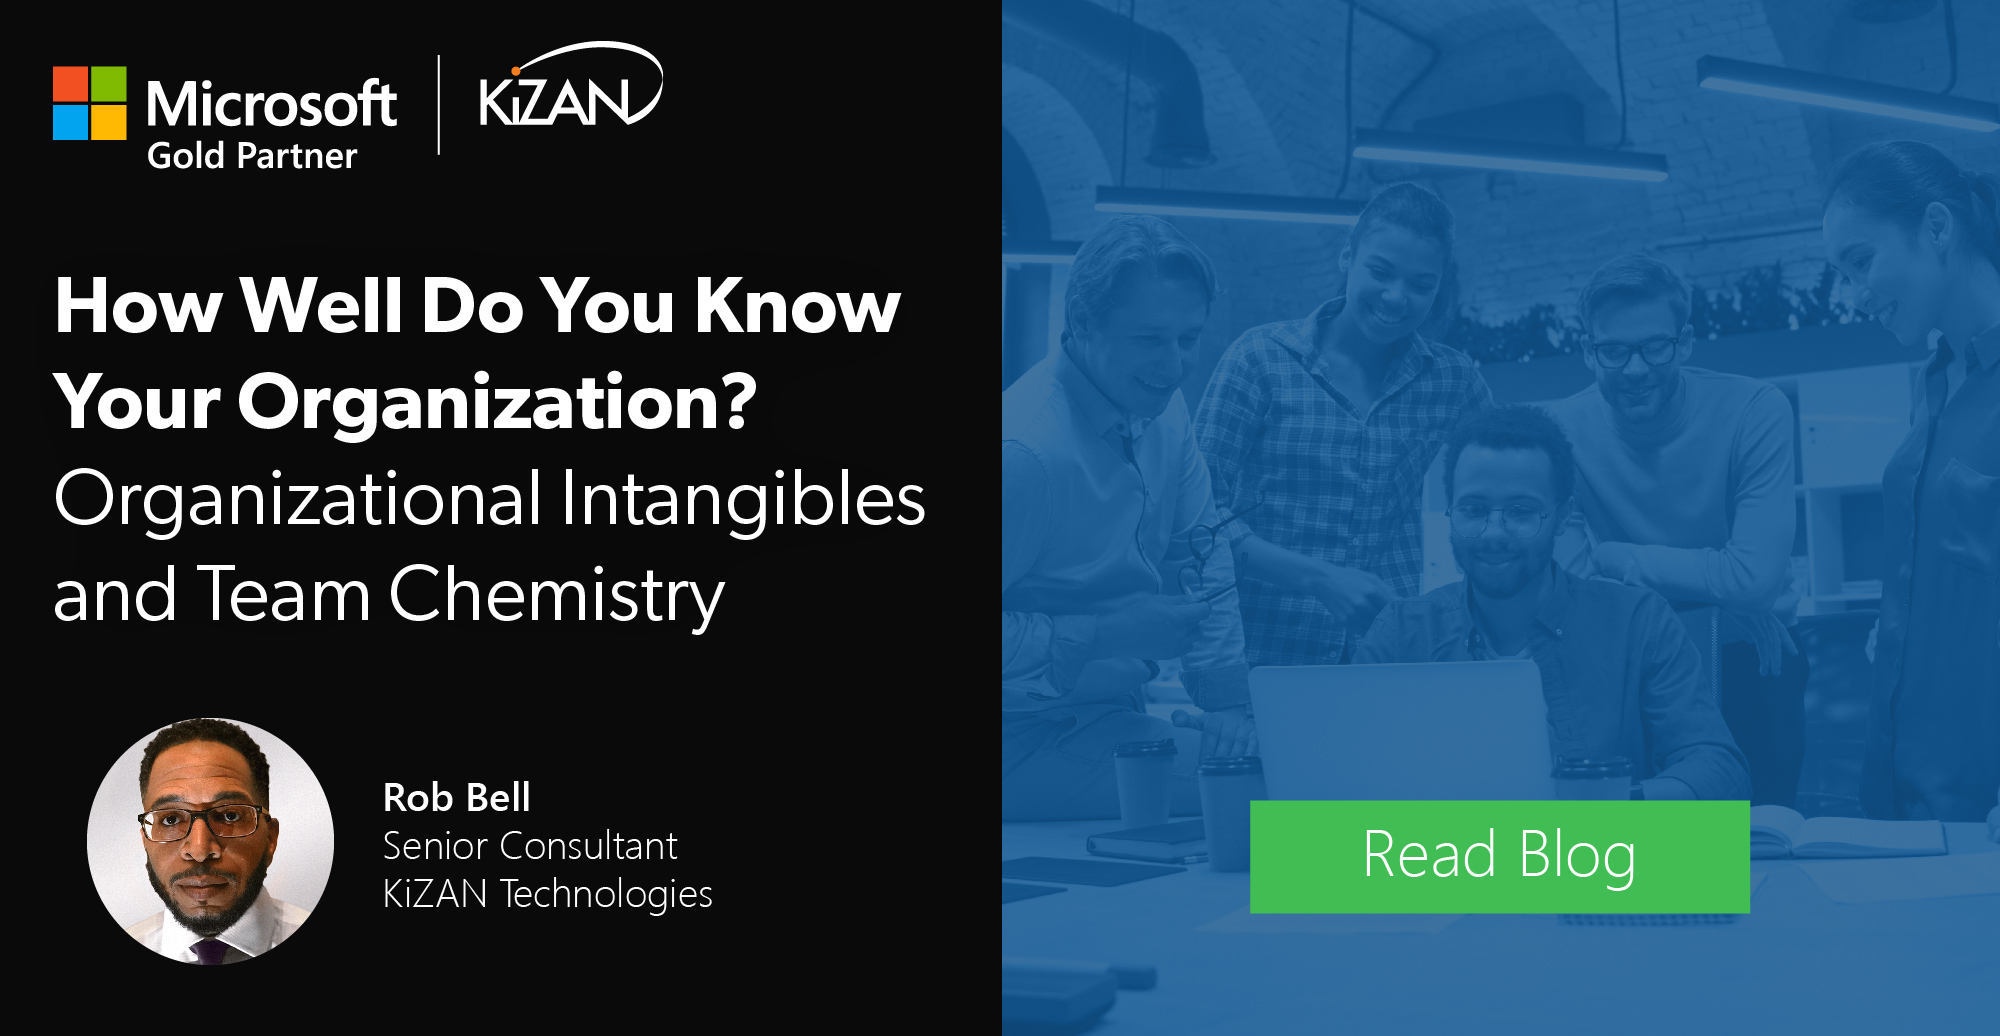 How Well Do You Know Your Organization? | Organizational Intangibles and Team Chemistry